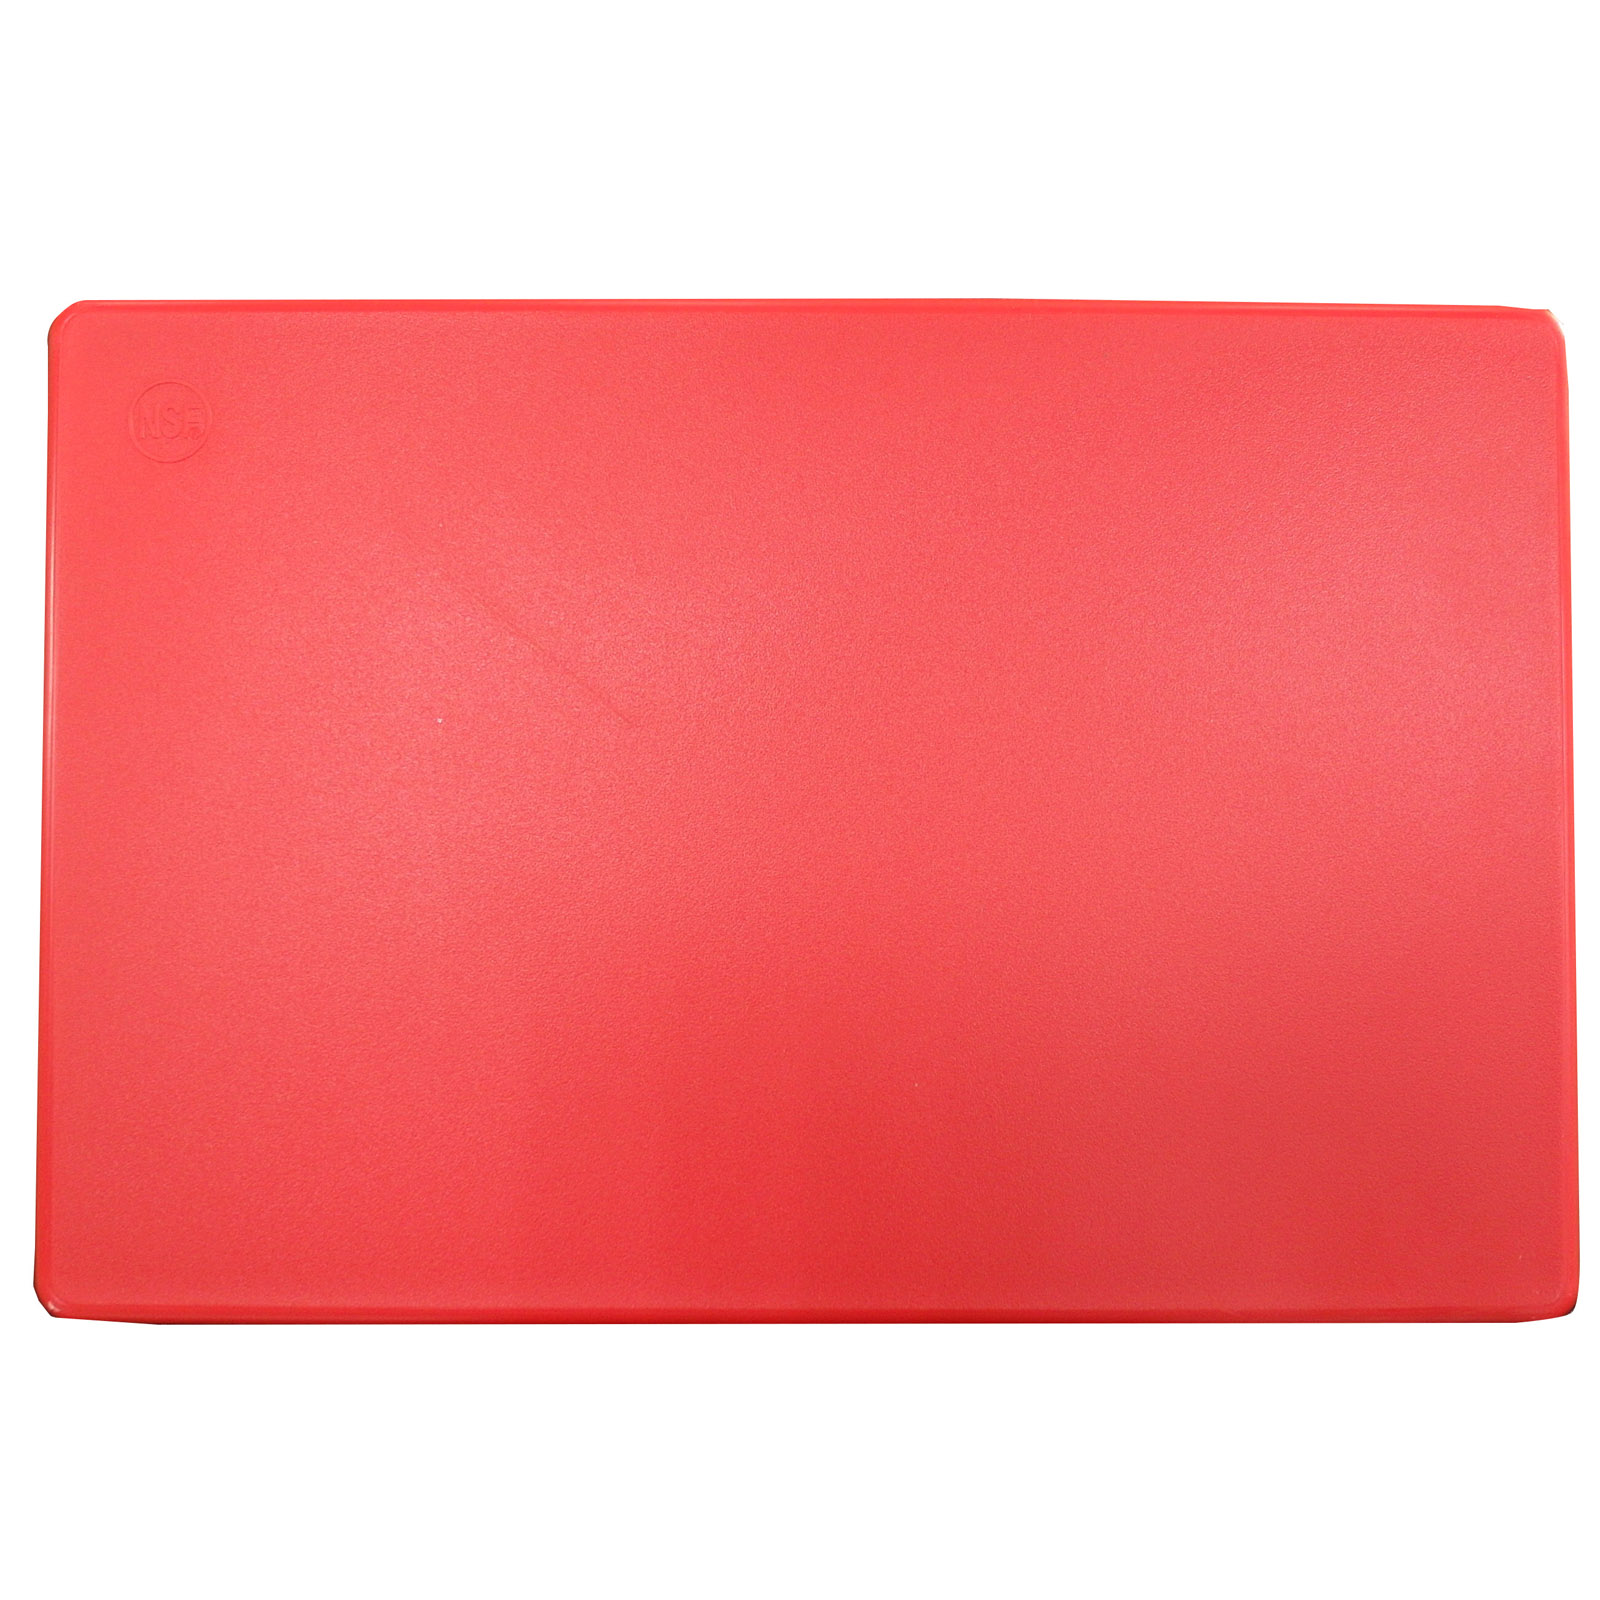 Admiral Craft HDCB-1520/RD cutting board, plastic